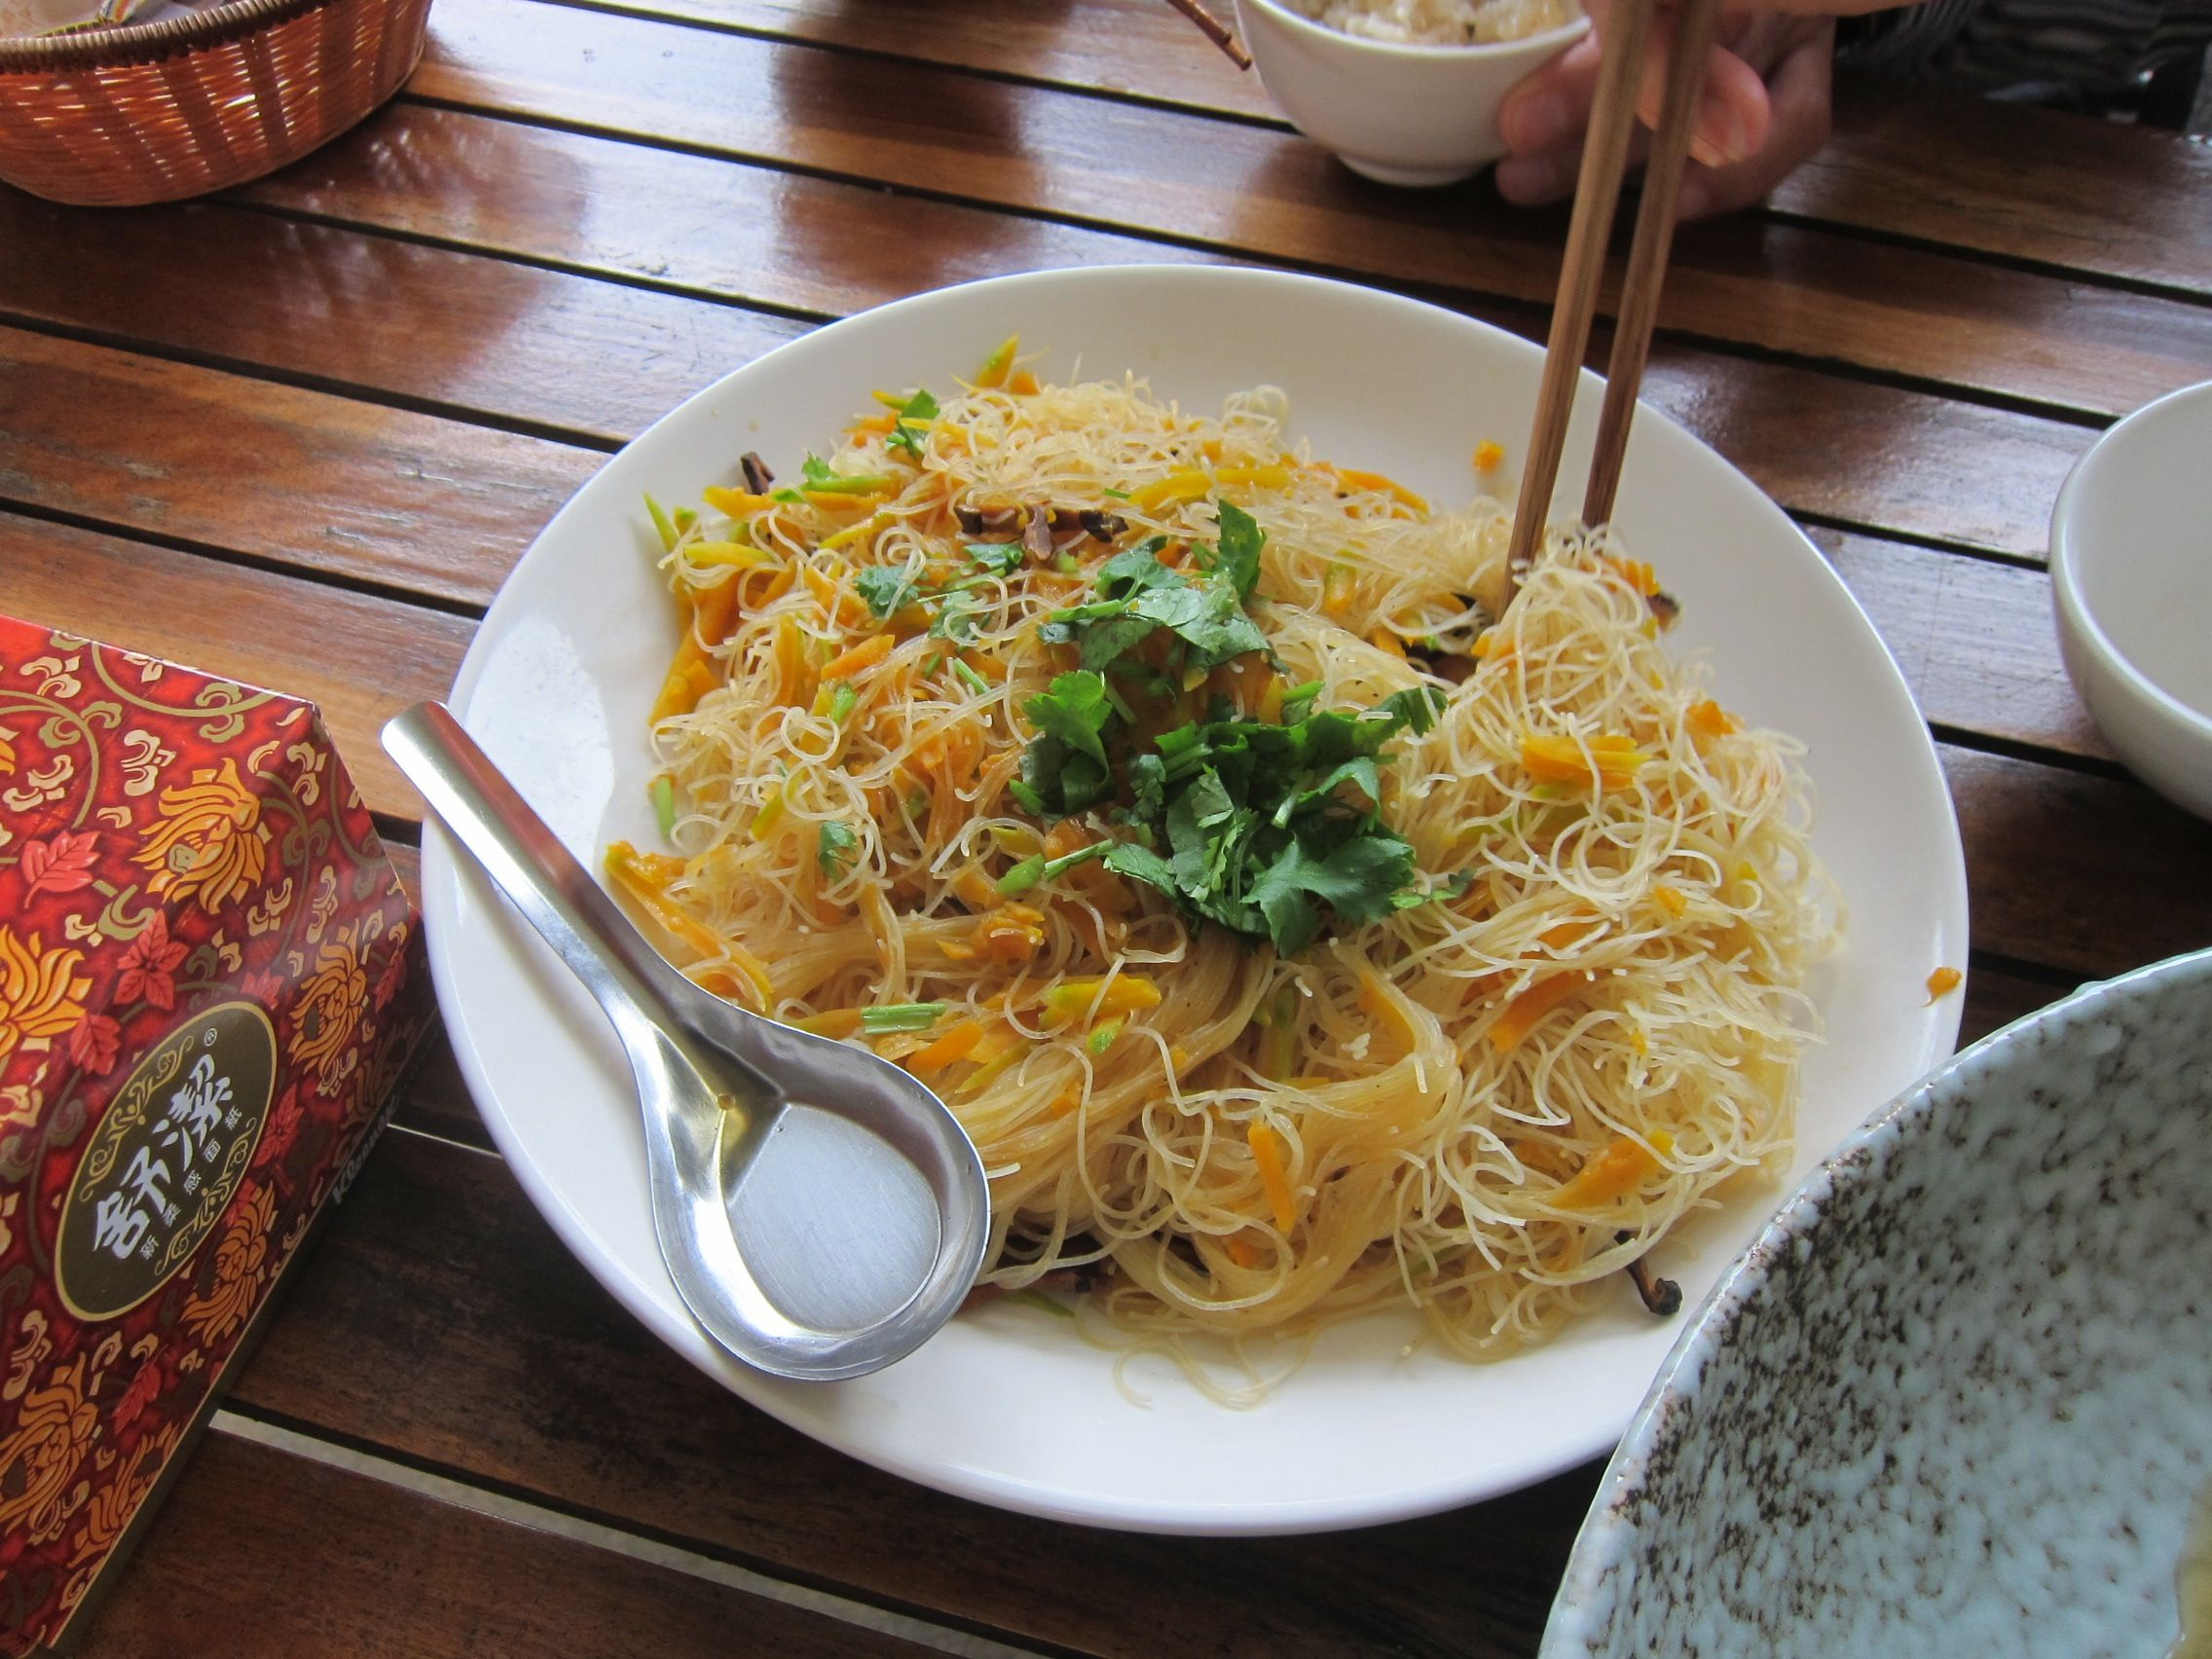 Fried rice noodles with pumpkin | Taiwan and Food | Pinterest